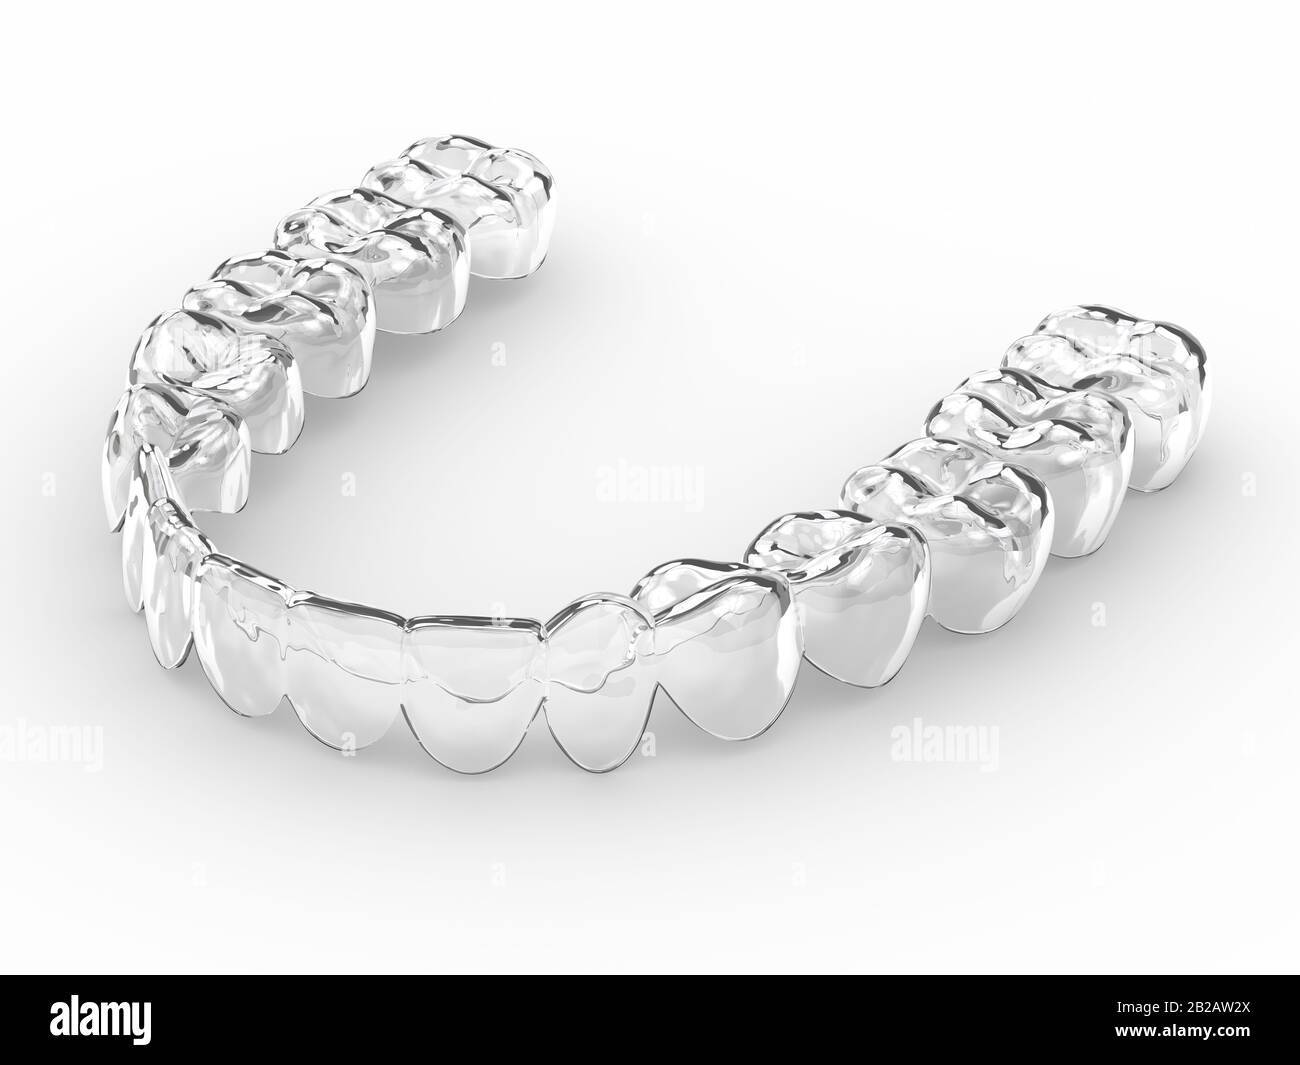 3d Render Of Invisalign Removable And Invisible Retainer Over